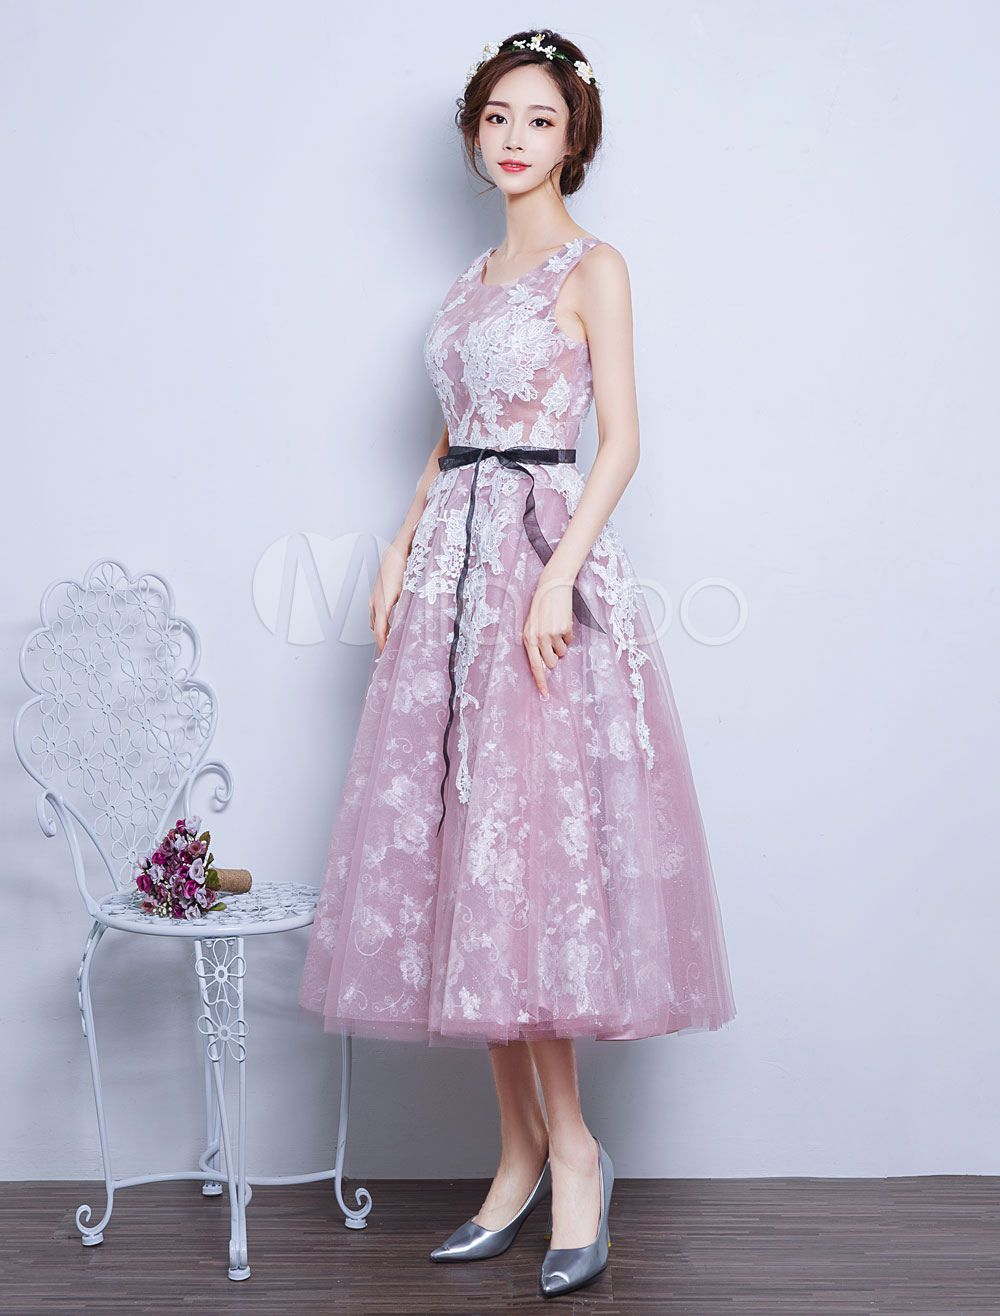 c554629da82bc Pink Prom Dresses 2018 Short Illusion Lace Applique Party Dress Scoop  Neckline Tea Length Floral Print Backless Graduation Dress With Sash #Lace,  #Illusion, ...